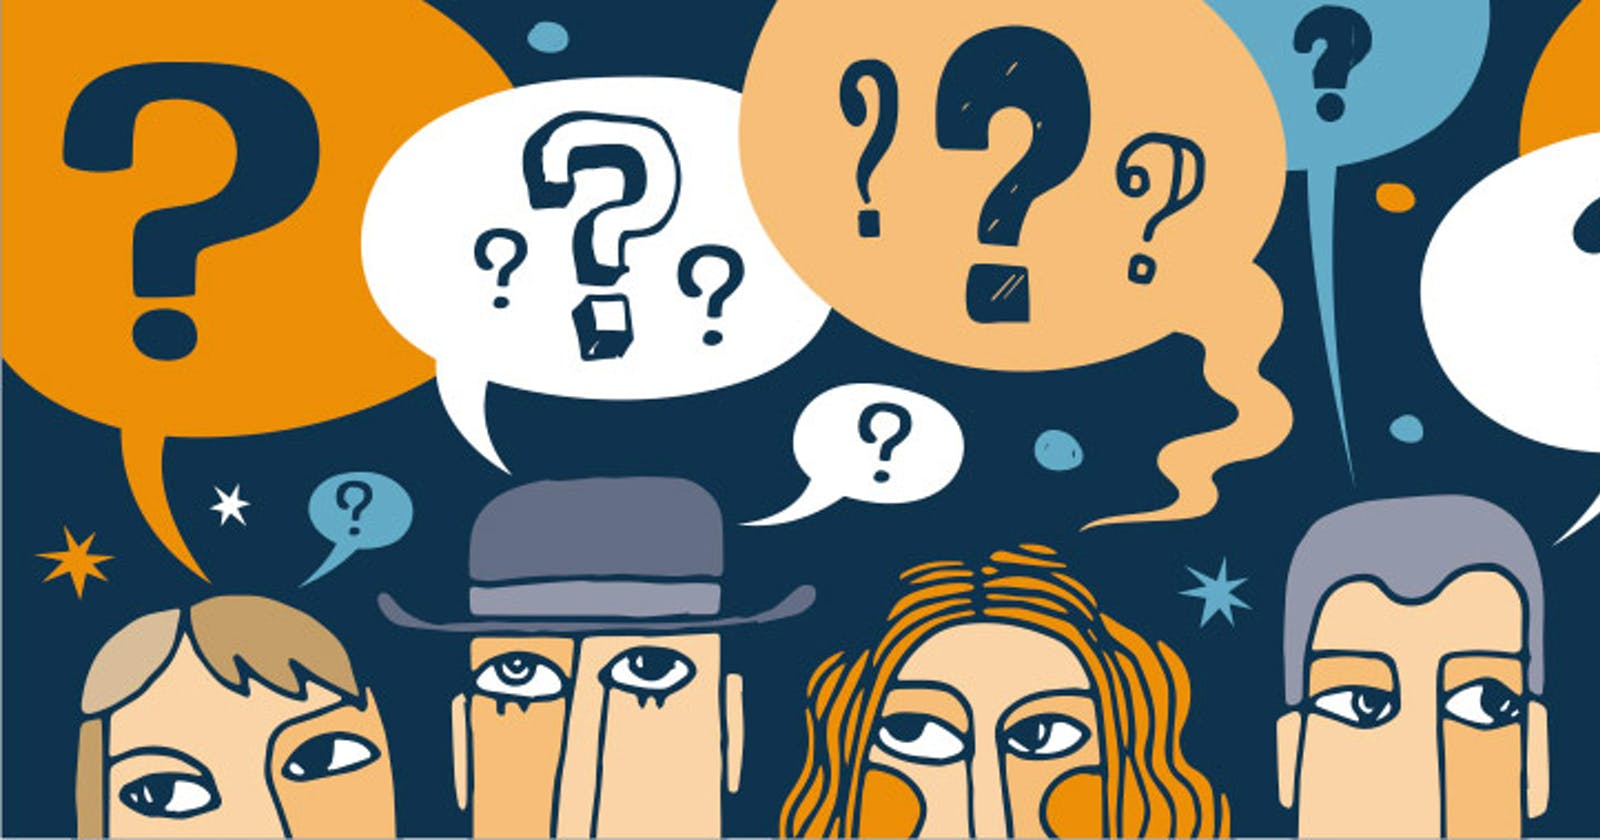 What I've learnt: Asking Questions